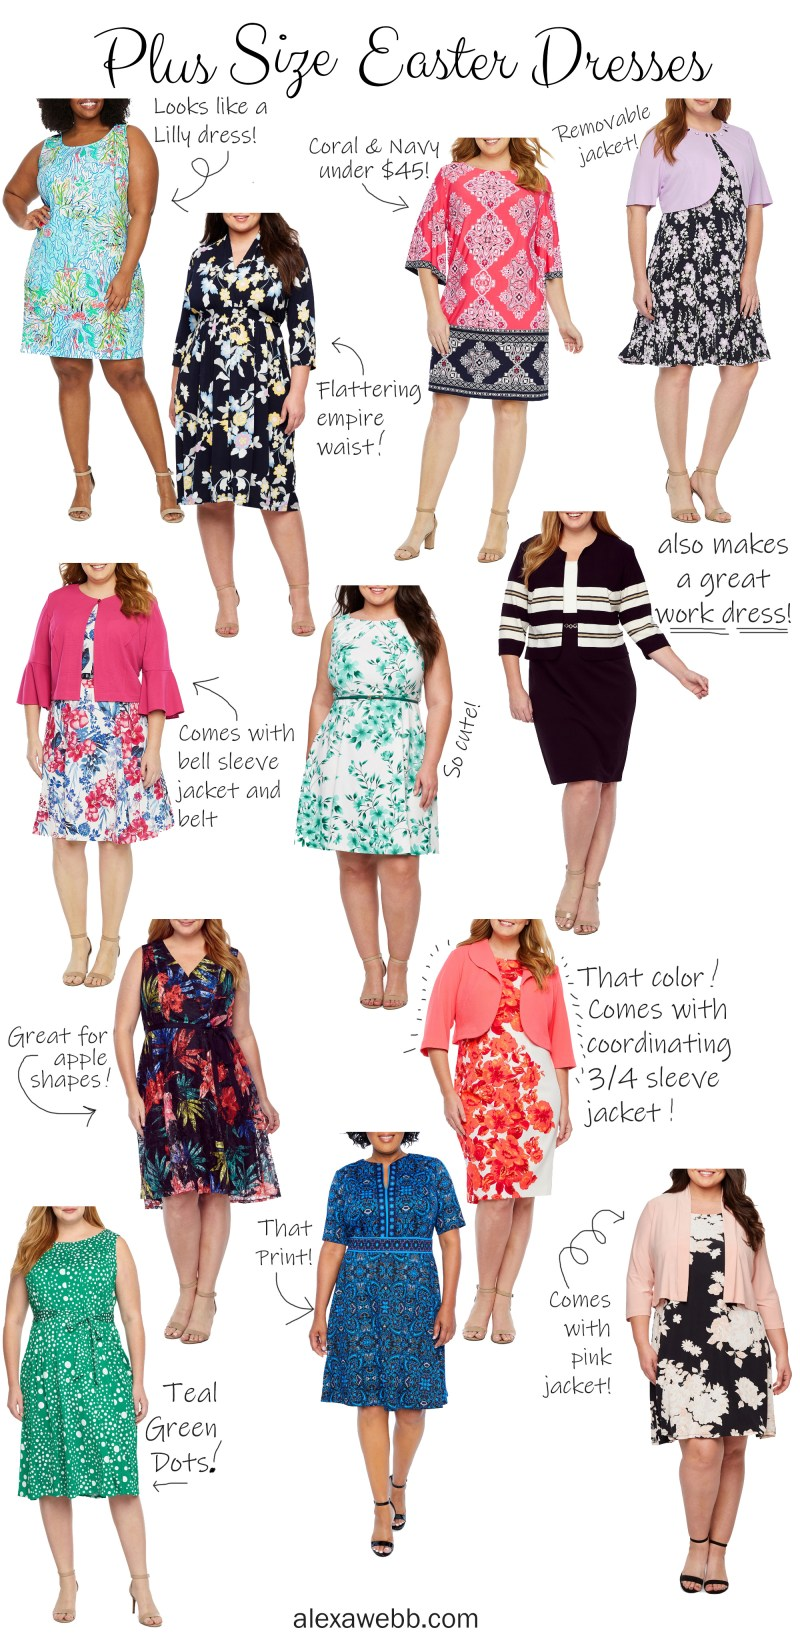 12 Plus Size Easter Dresses - Alexa Webb